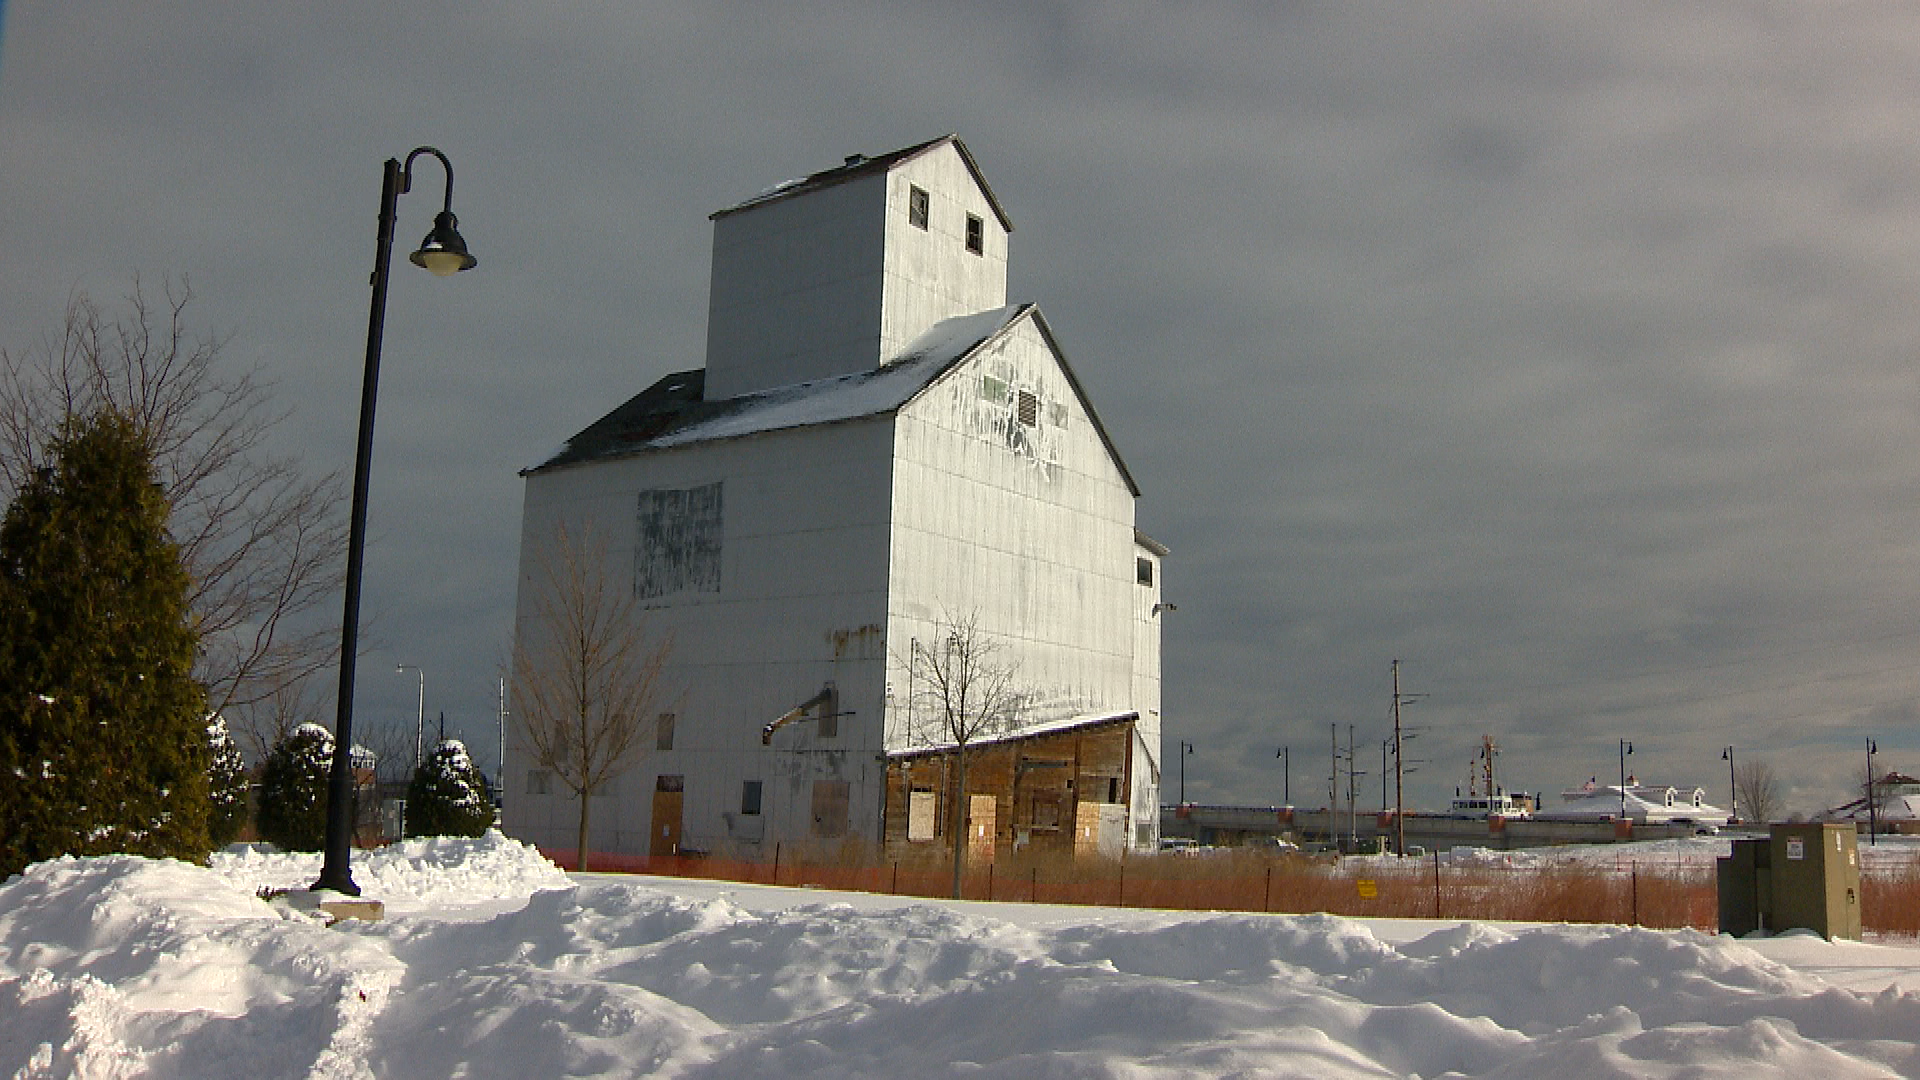 The Sturgeon Bay granary is seen, Dec. 15, 2017. (WLUK image)